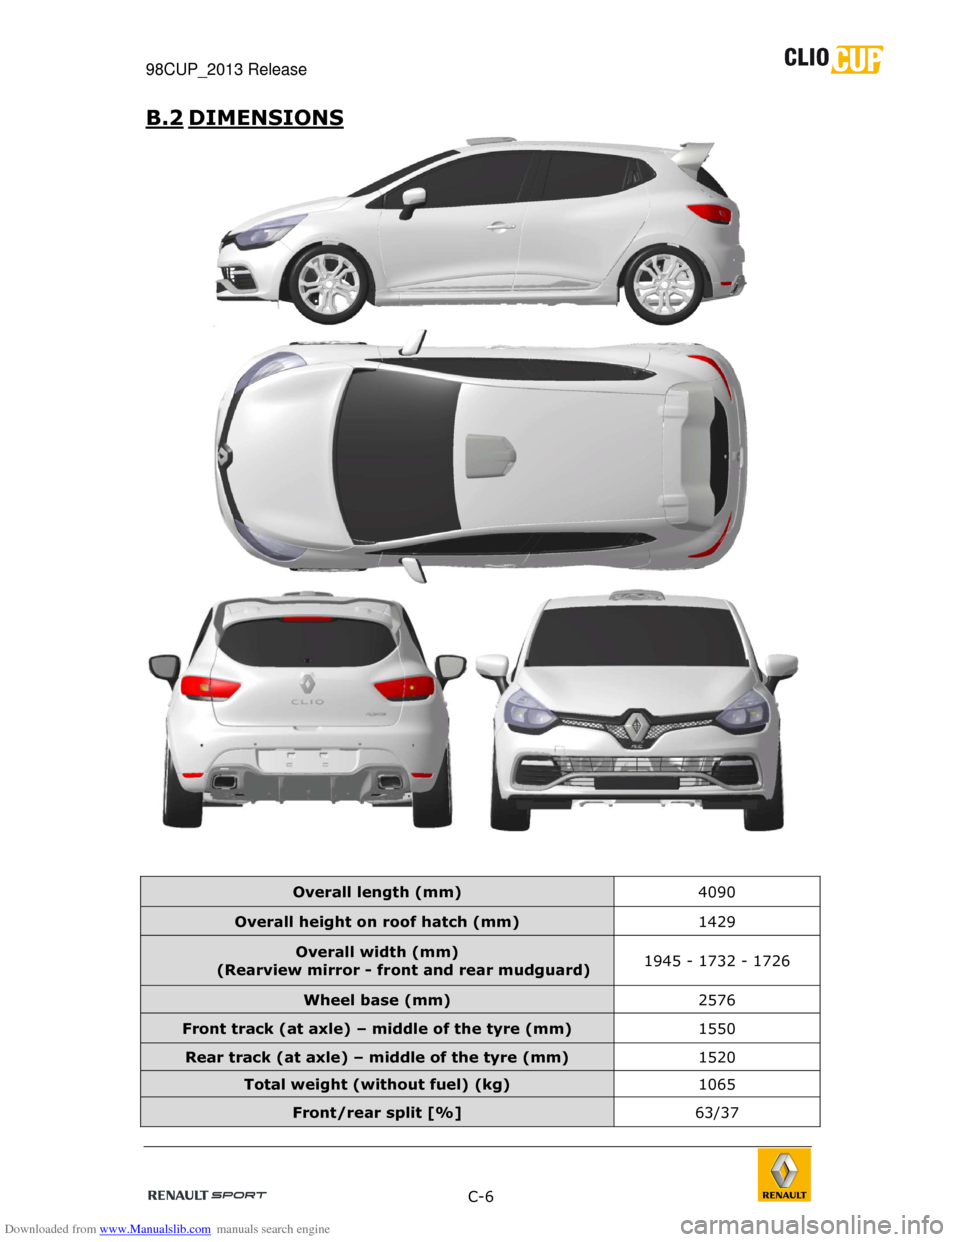 hight resolution of mb romanian clio x98 clio pdf manual large database auto pdf free reading 56k modems model renault clio pdf owner user guides are not affiliated with